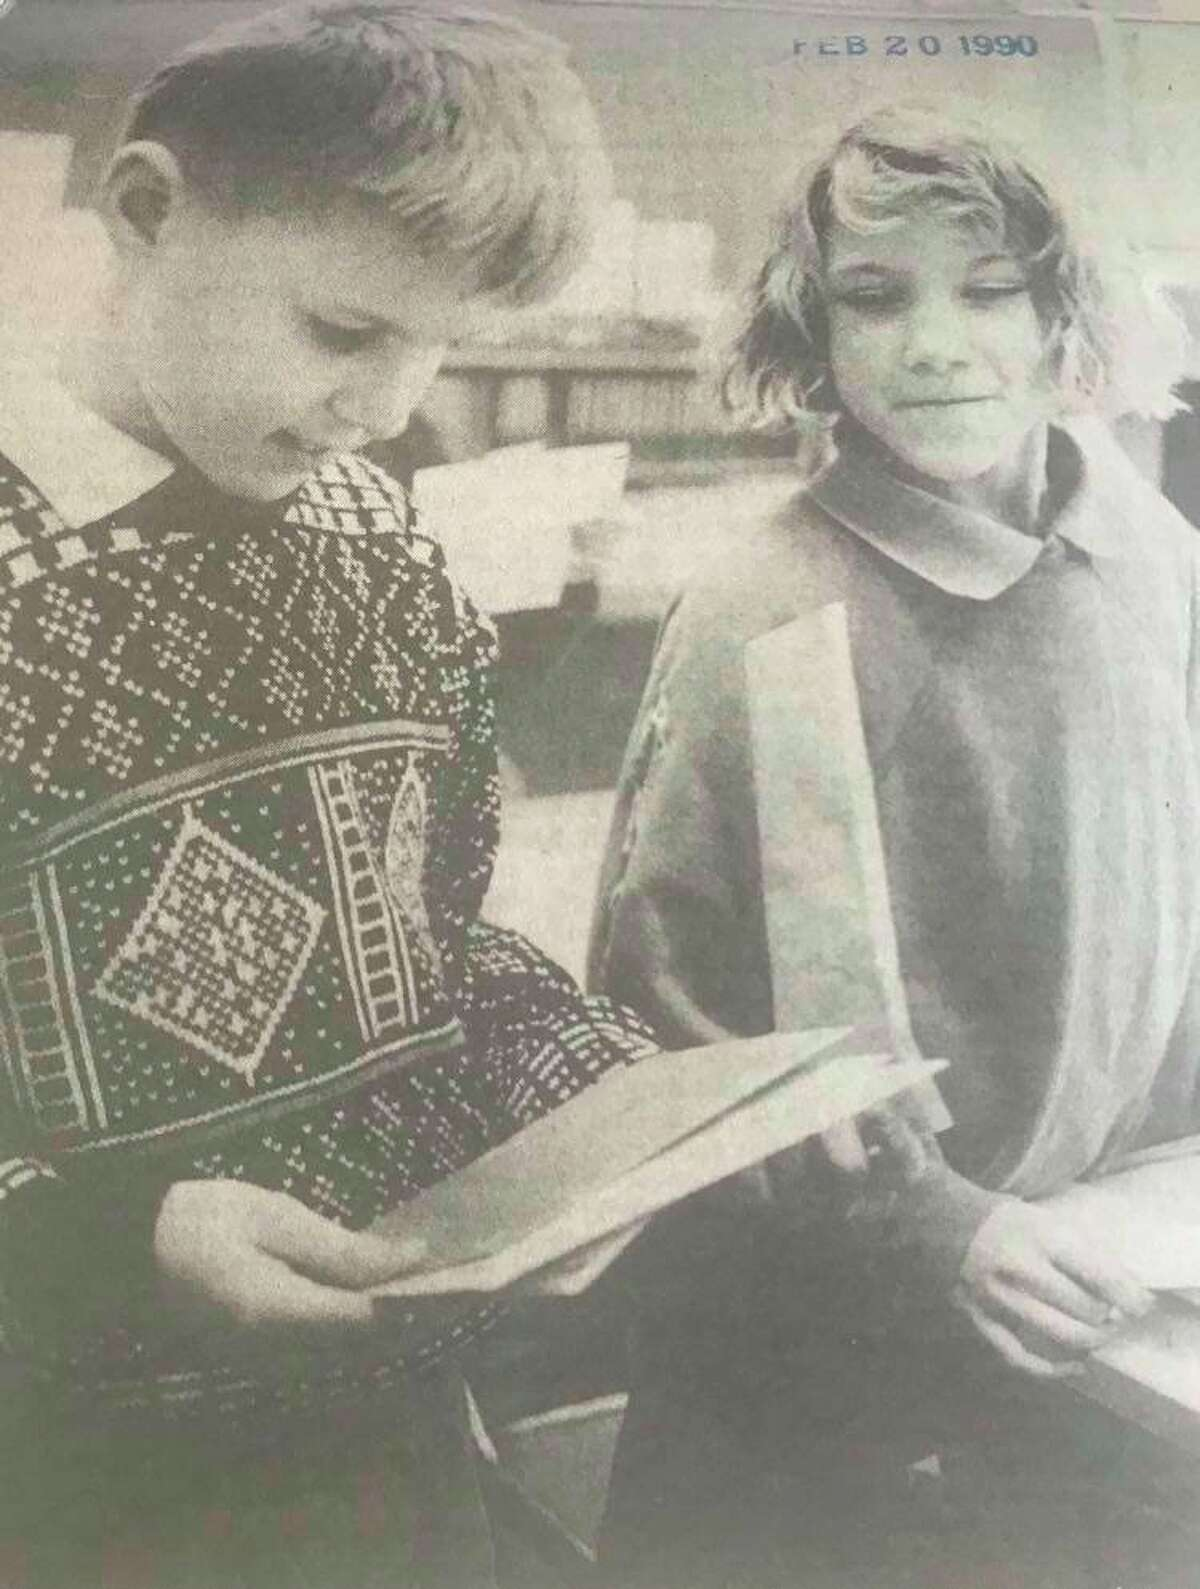 Scott Pugh, a member of Cook Elementary School Student Council, delivers Valentine's Day mail to Angie Sambrook, another third grader. February 1990